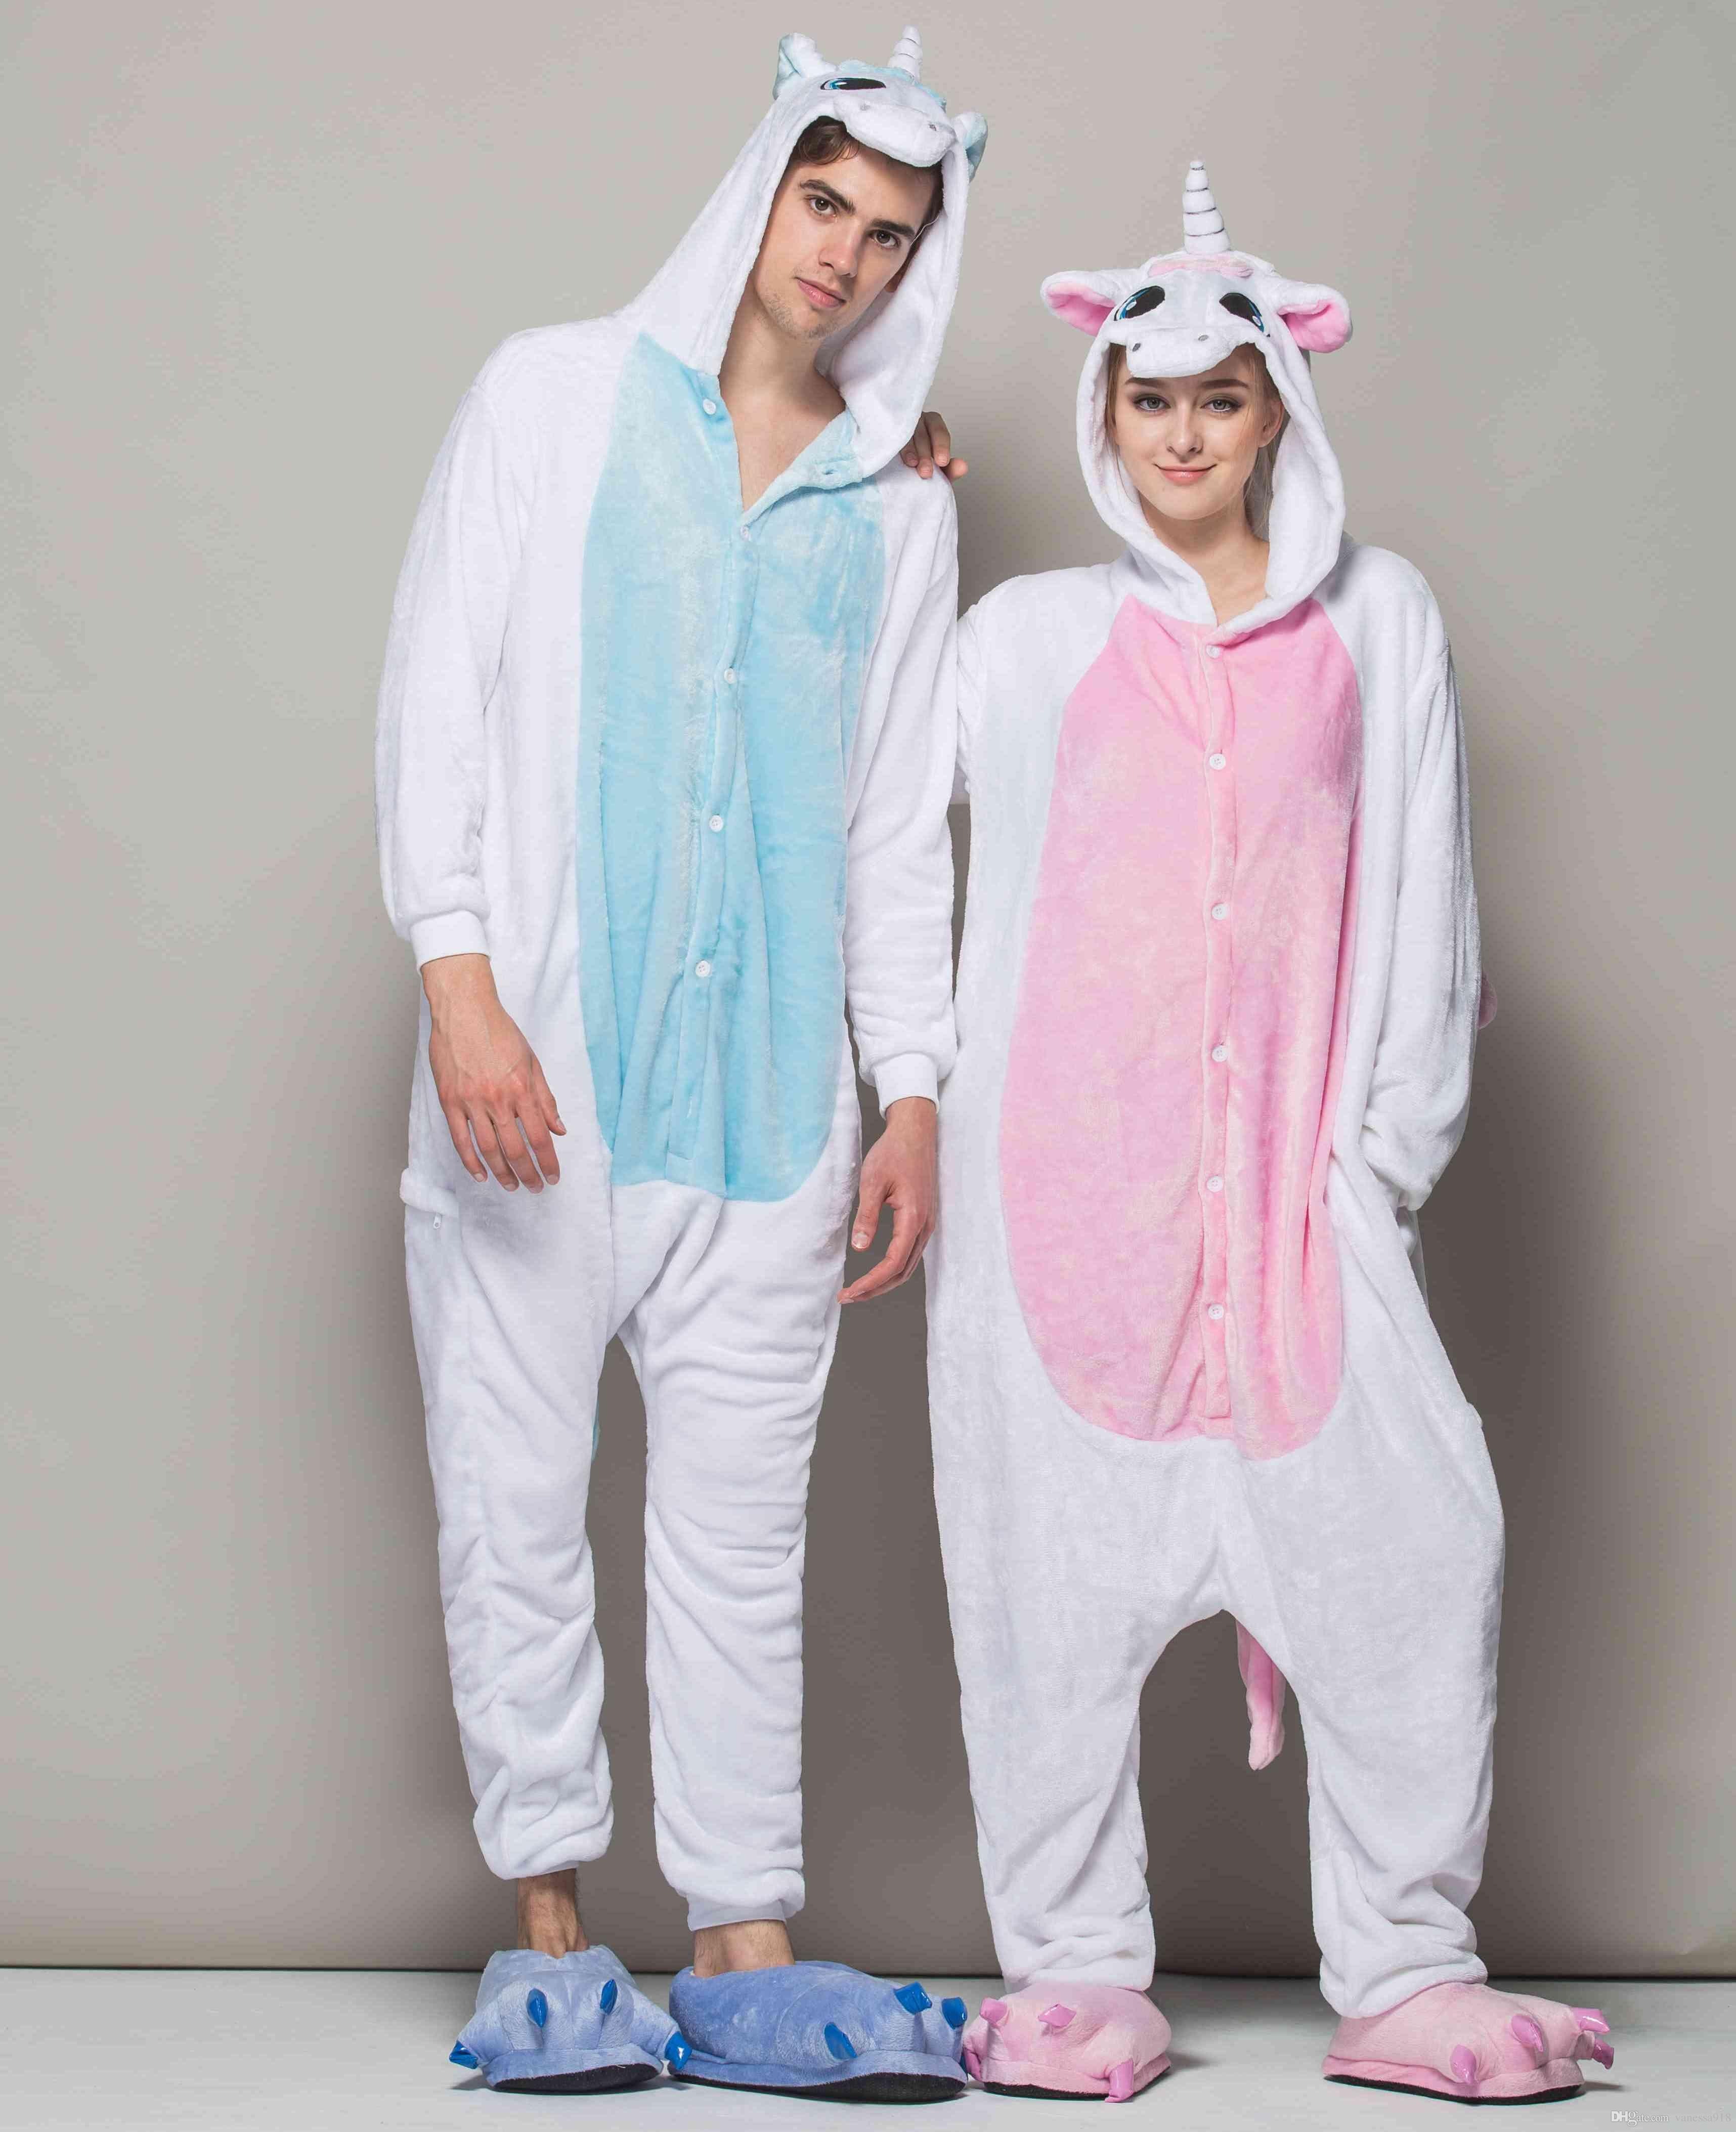 d3daa2e60a85 Cartoon Sleep Clothes Pajama Sets Adults Women Unicorn Flannel Onesies  Caroset Sleepwear Loungewear Animal Pajamas For Adult HML 003 Funny  Halloween ...